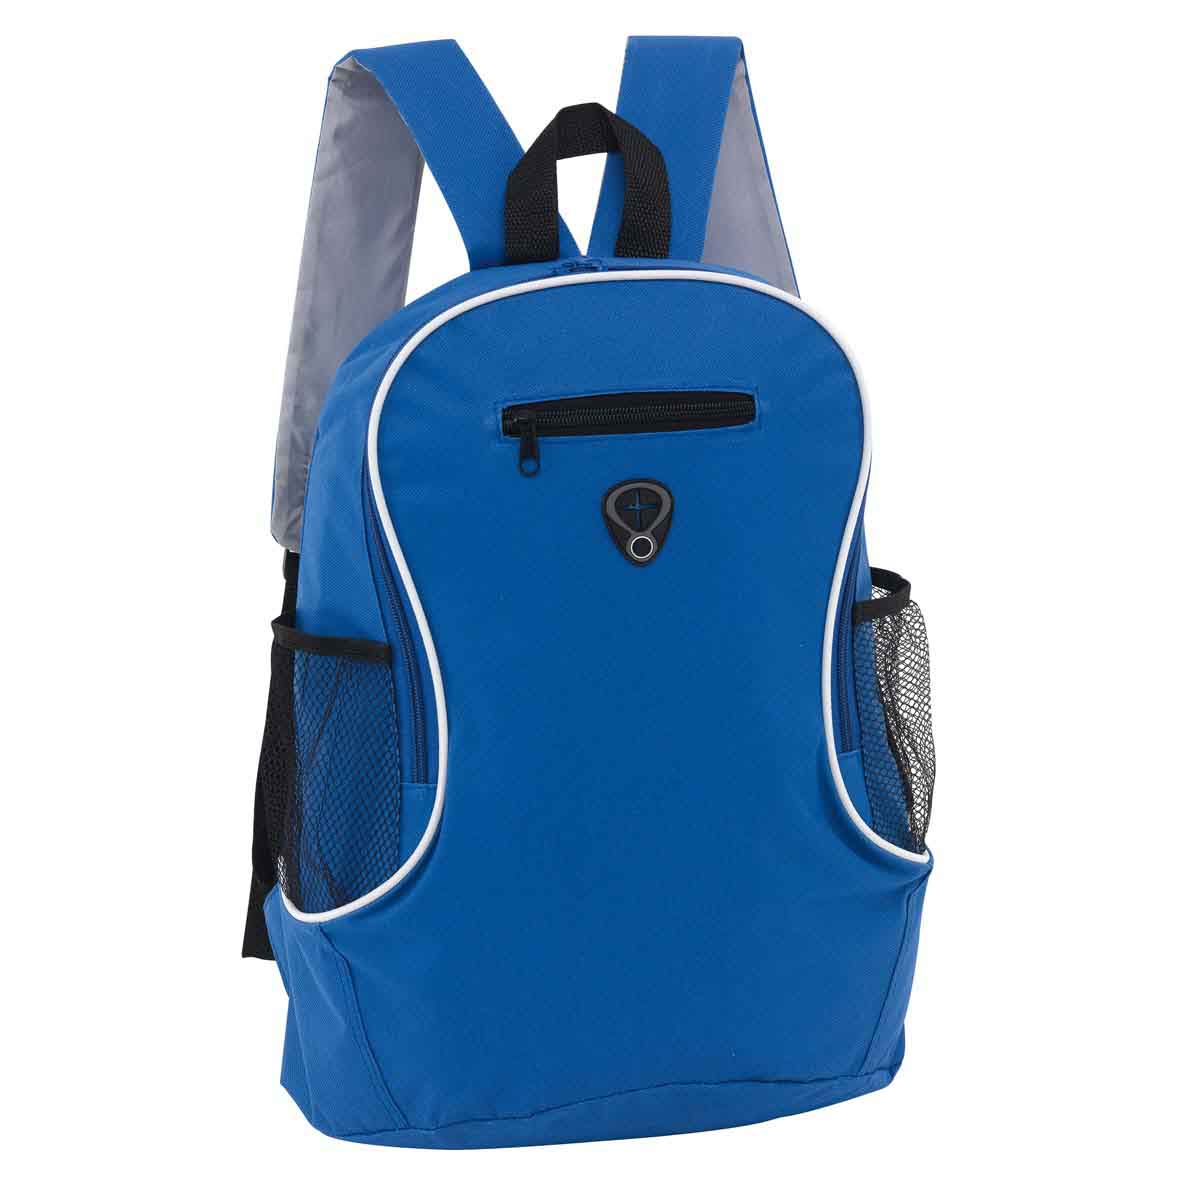 Backpack 'Tec' - Black/Royal Blue ins-0819577